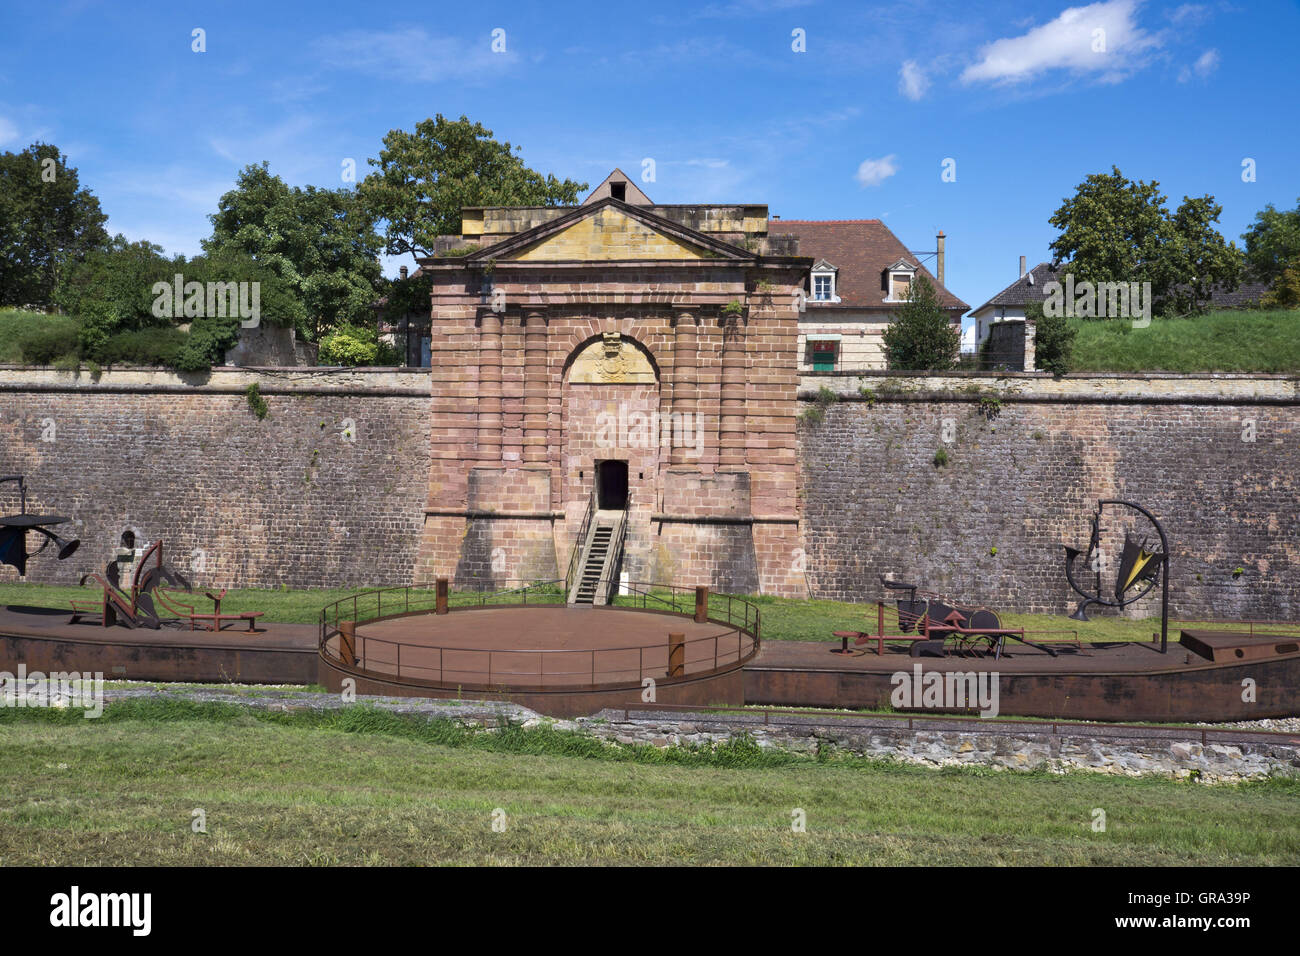 Porte De Belfort, Fortifications Of Vauban, Unesco World Heritage Site, Neuf-Brisach, Alsace, France, Europe - Stock Image